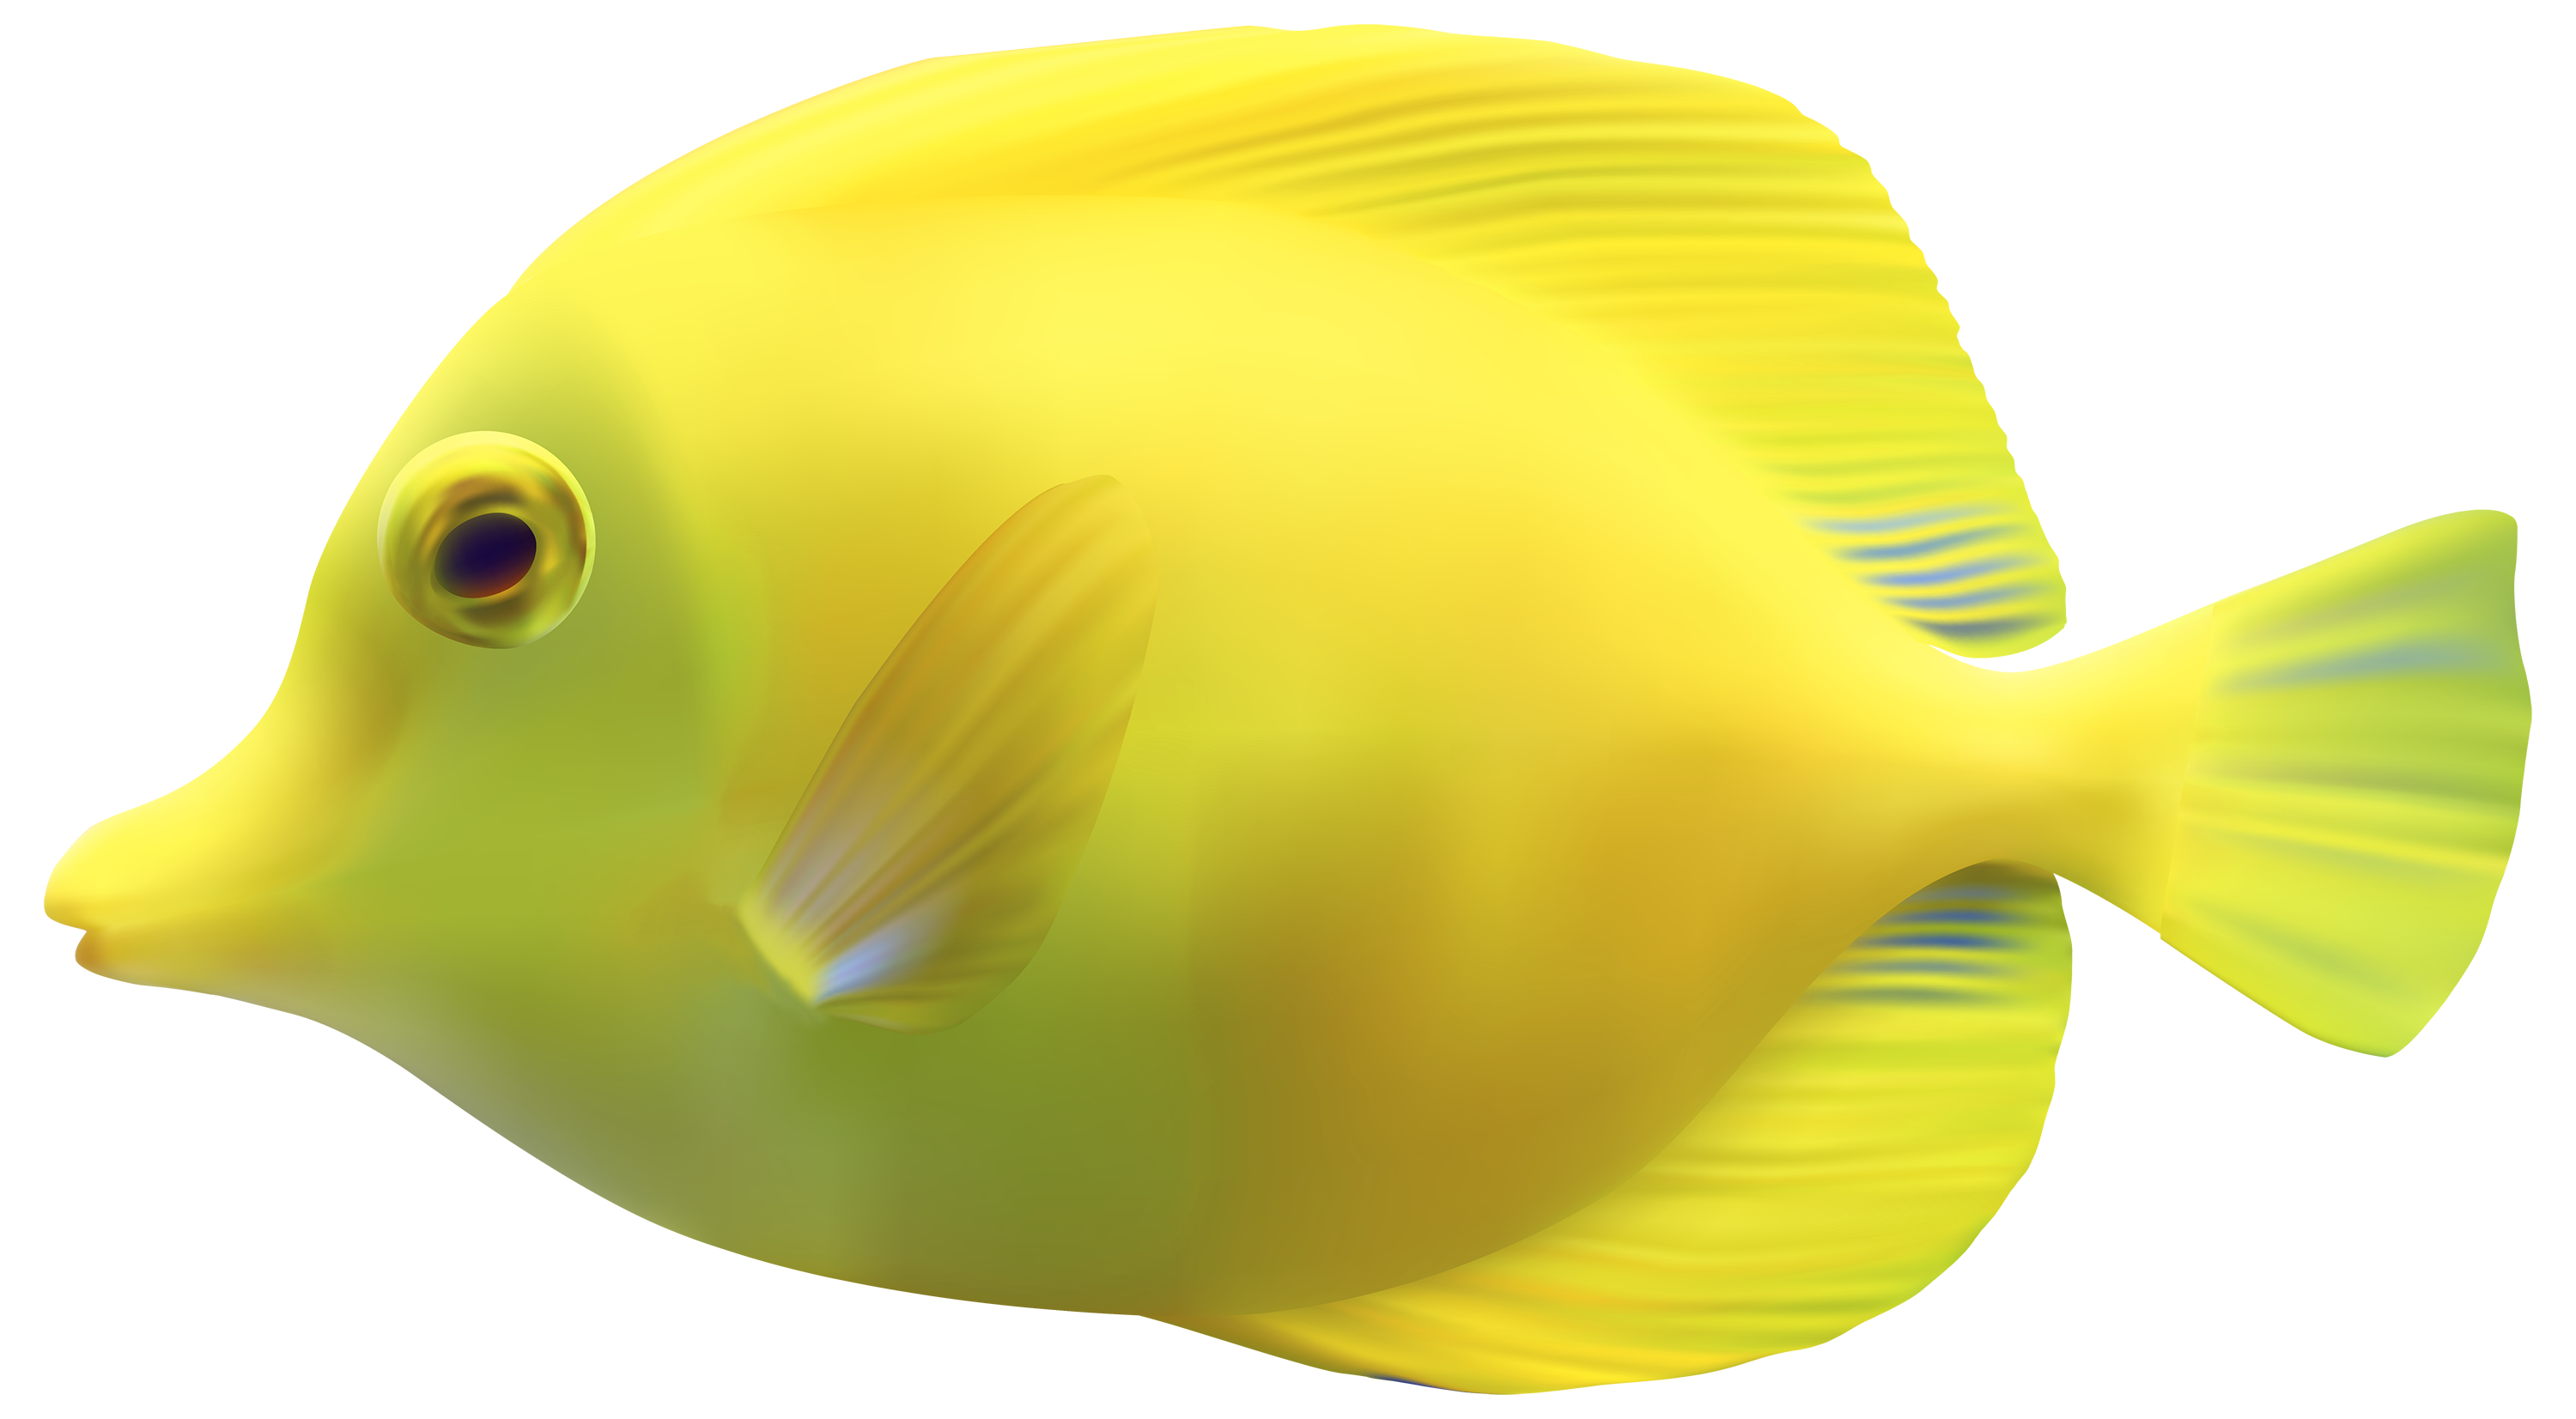 Yellow fish background clipart graphic royalty free download Yellow ZebrasomaTang Fish PNG Clipart - Best WEB Clipart graphic royalty free download